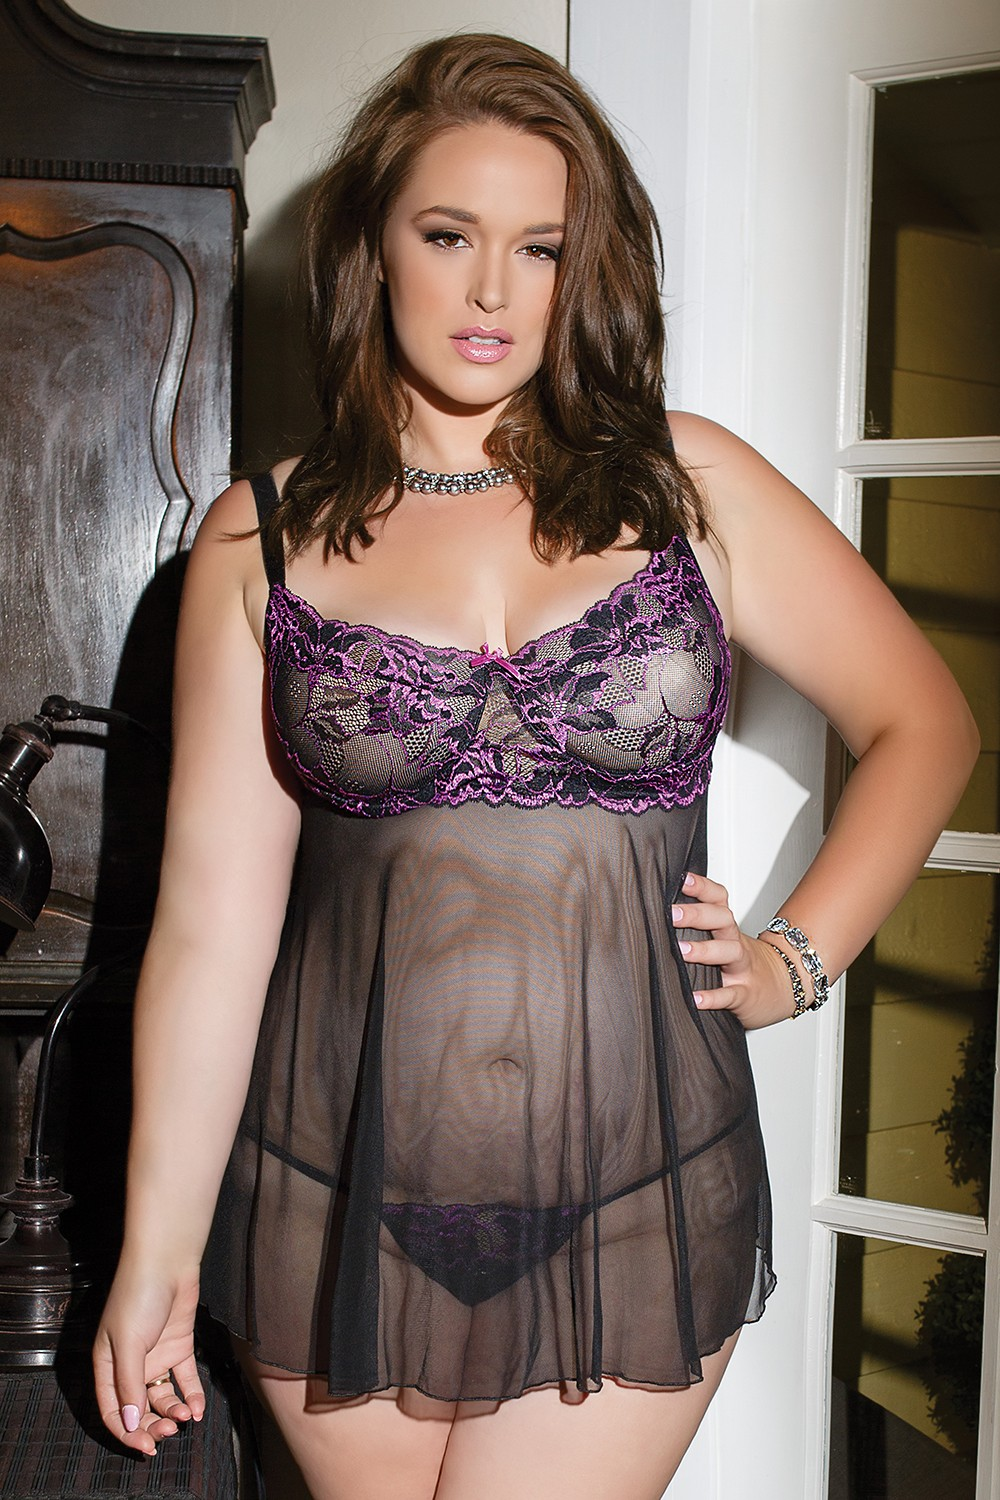 Details about  /COQUETTE 3392 Luxury Sheer Underwired Babydoll and Matching G-String Set